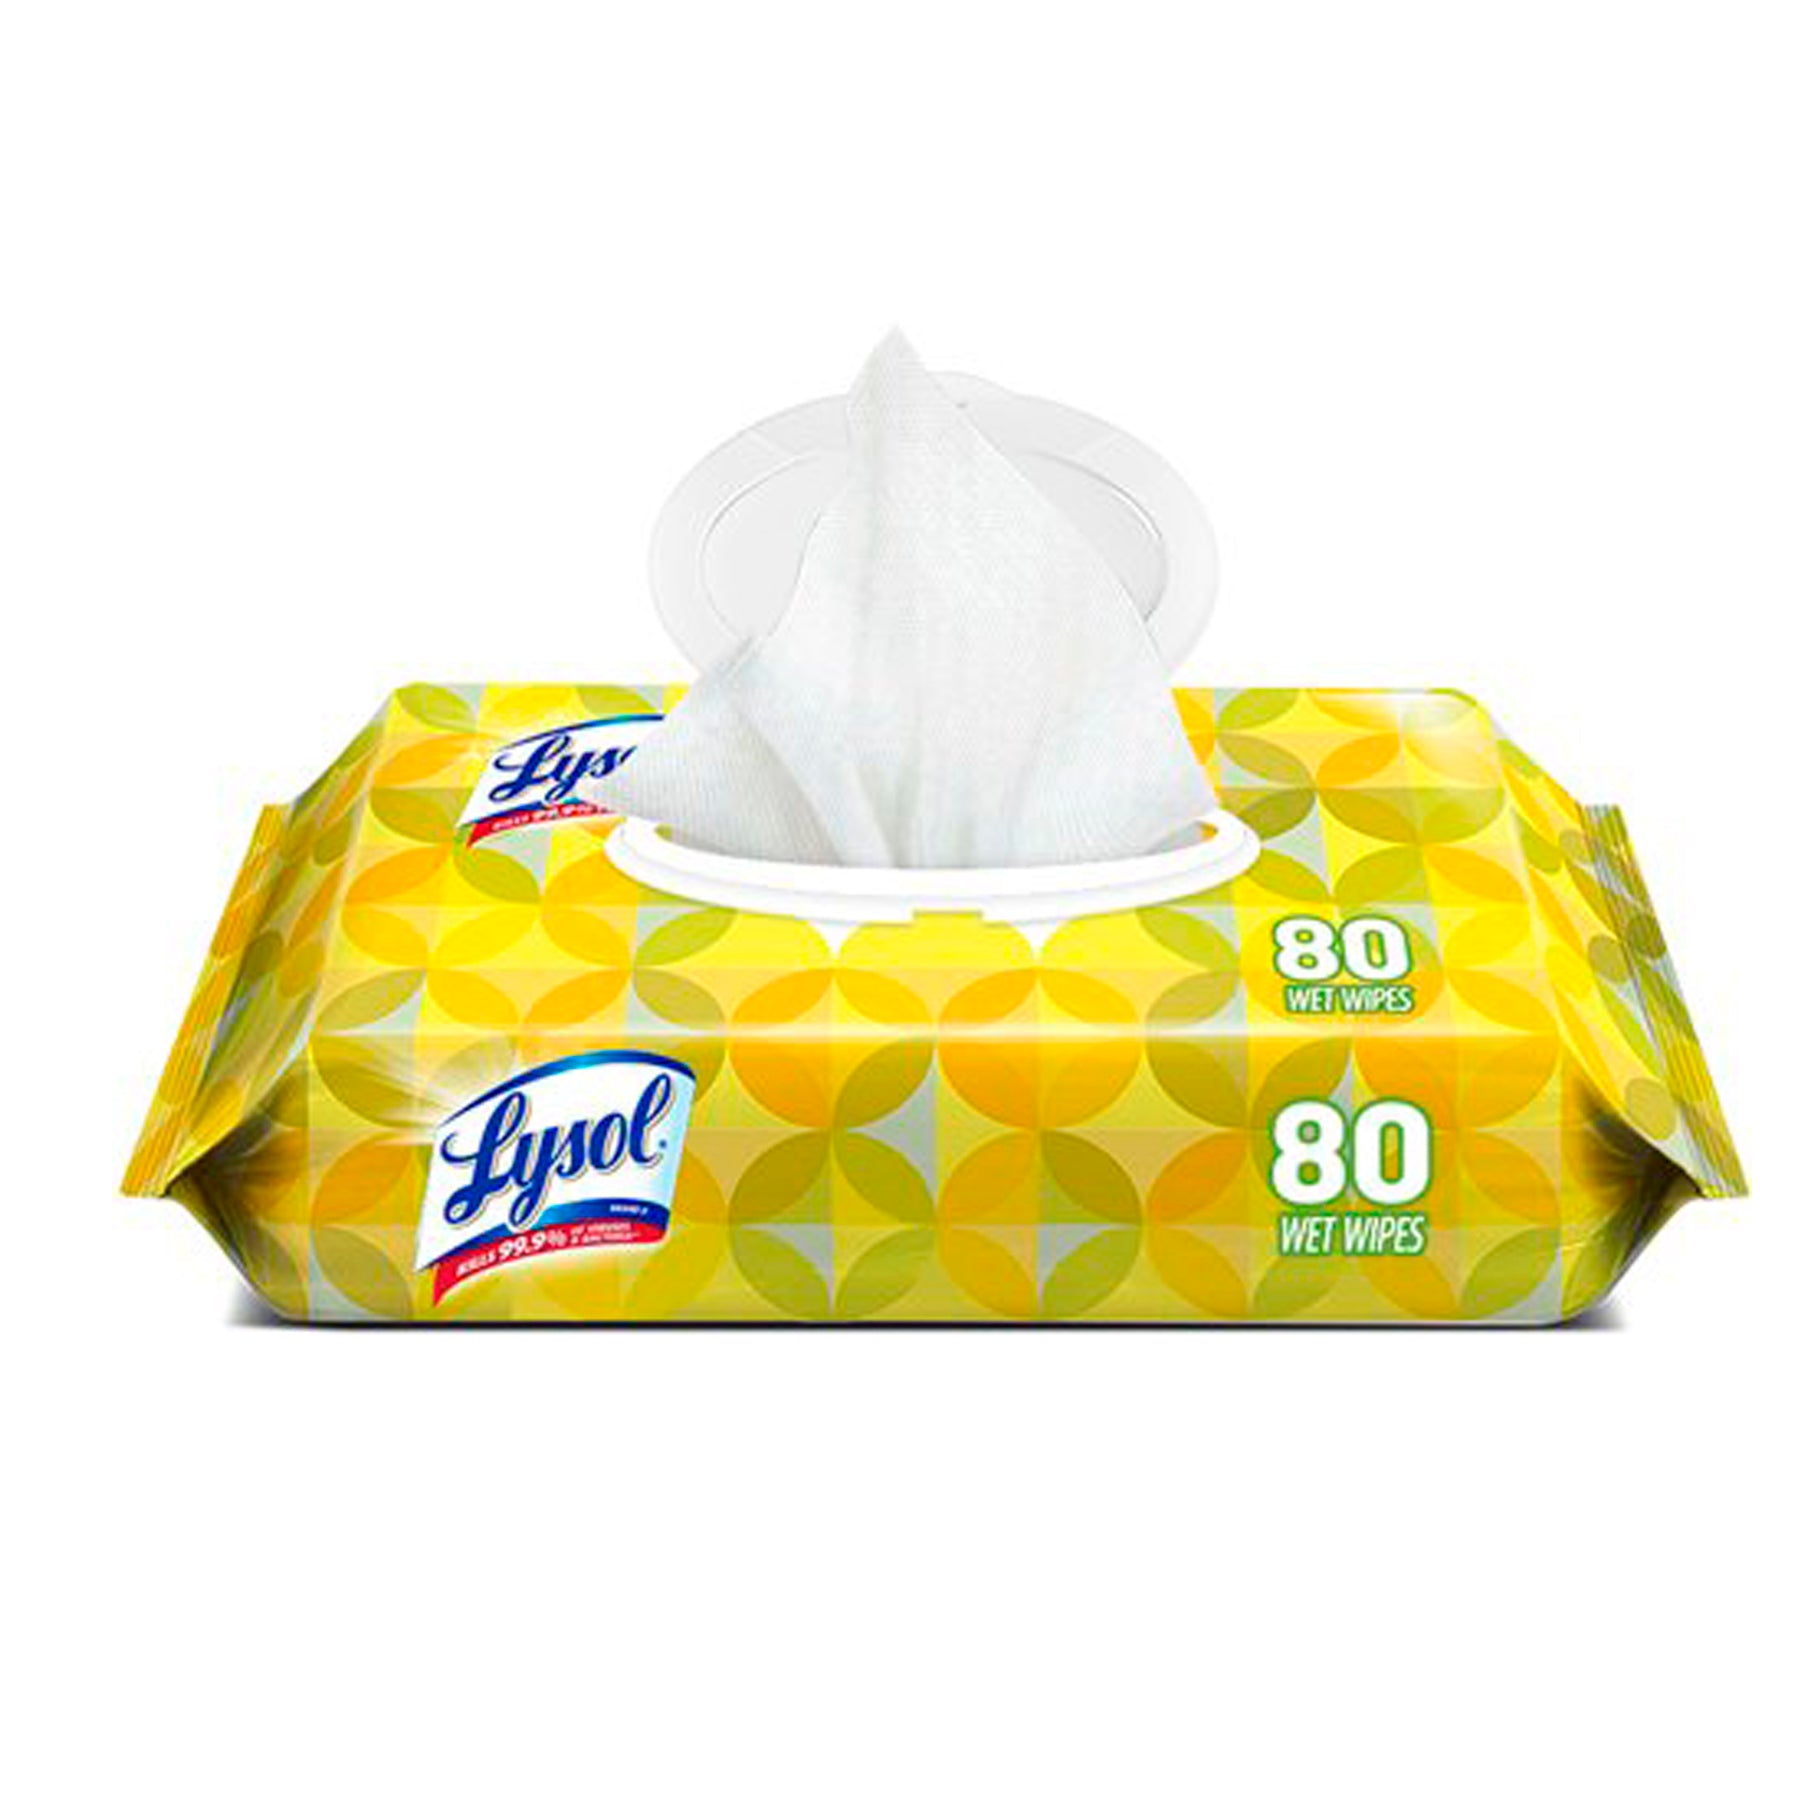 Lysol Disinfecting Wipes, 80ct, Lemon & Lime